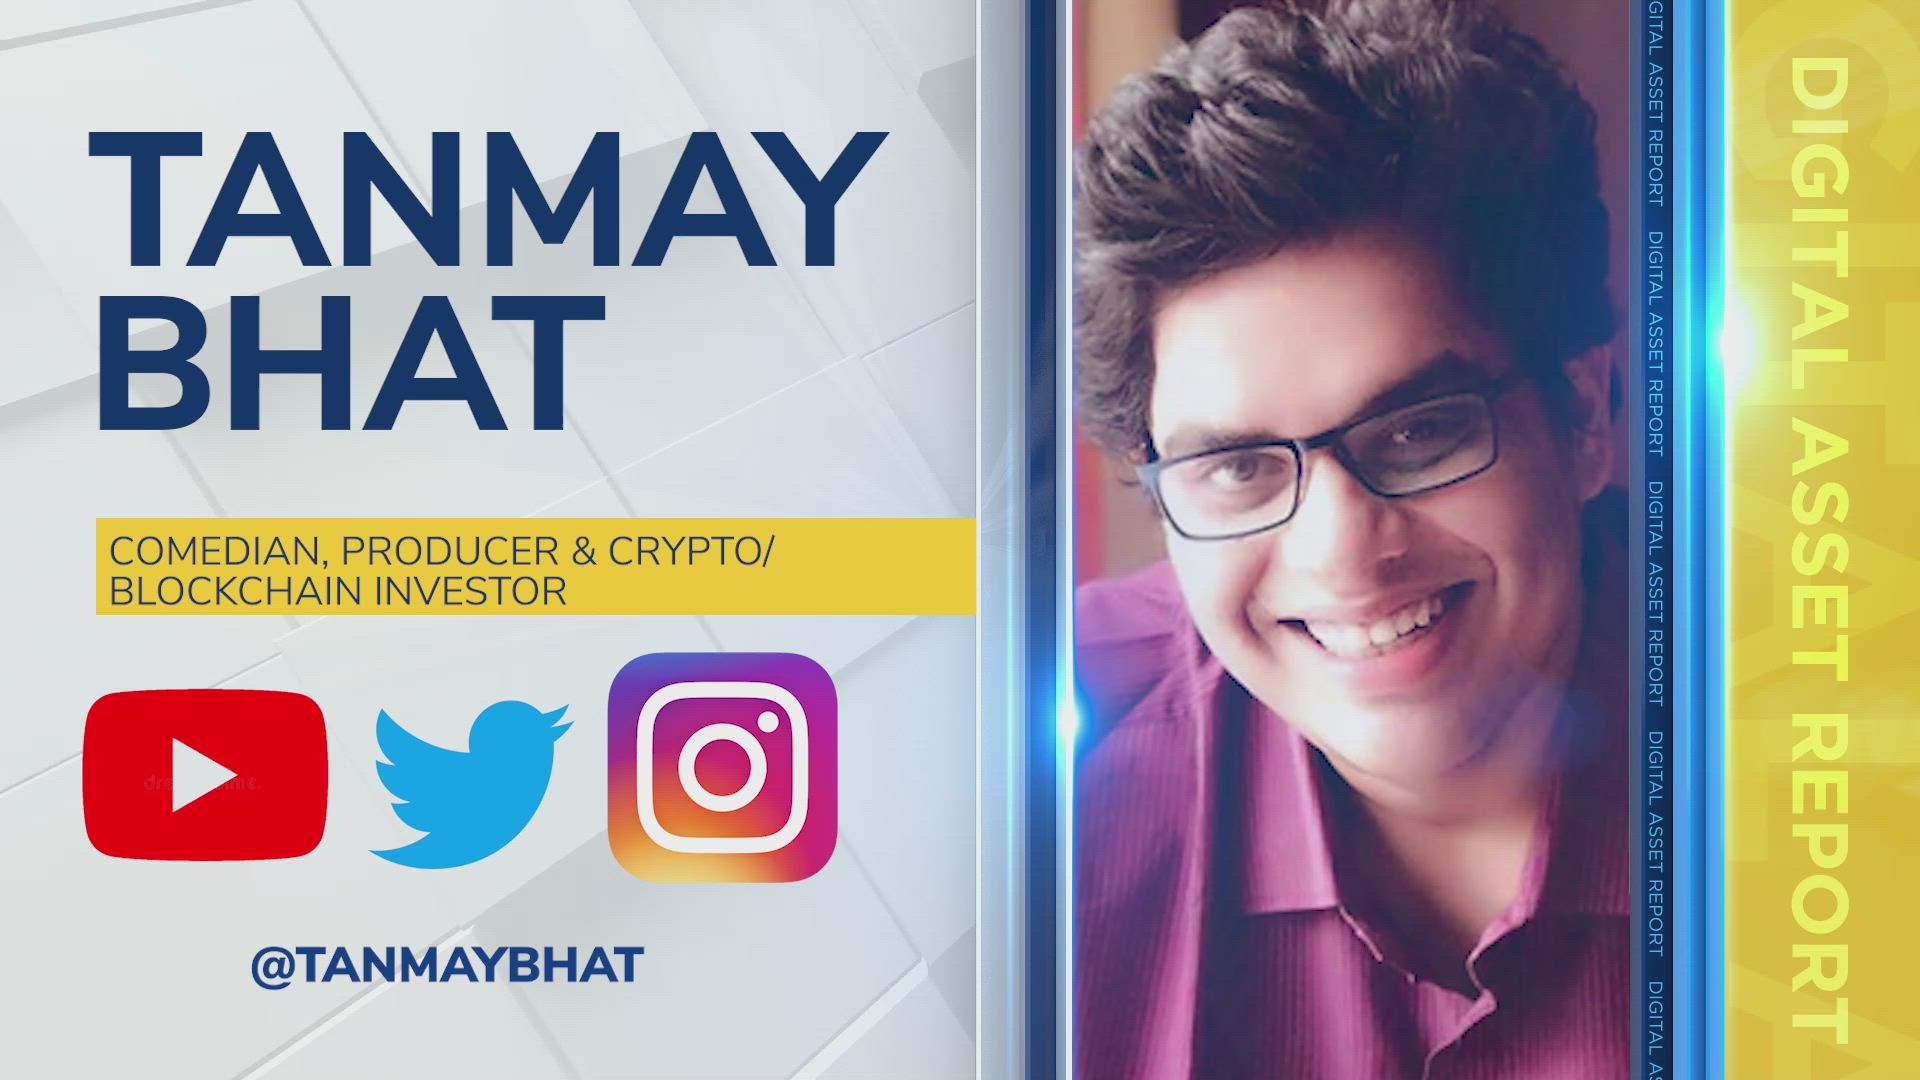 Tanmay Bhat, Comedian, Producer, Crypto & Blockchain Investor